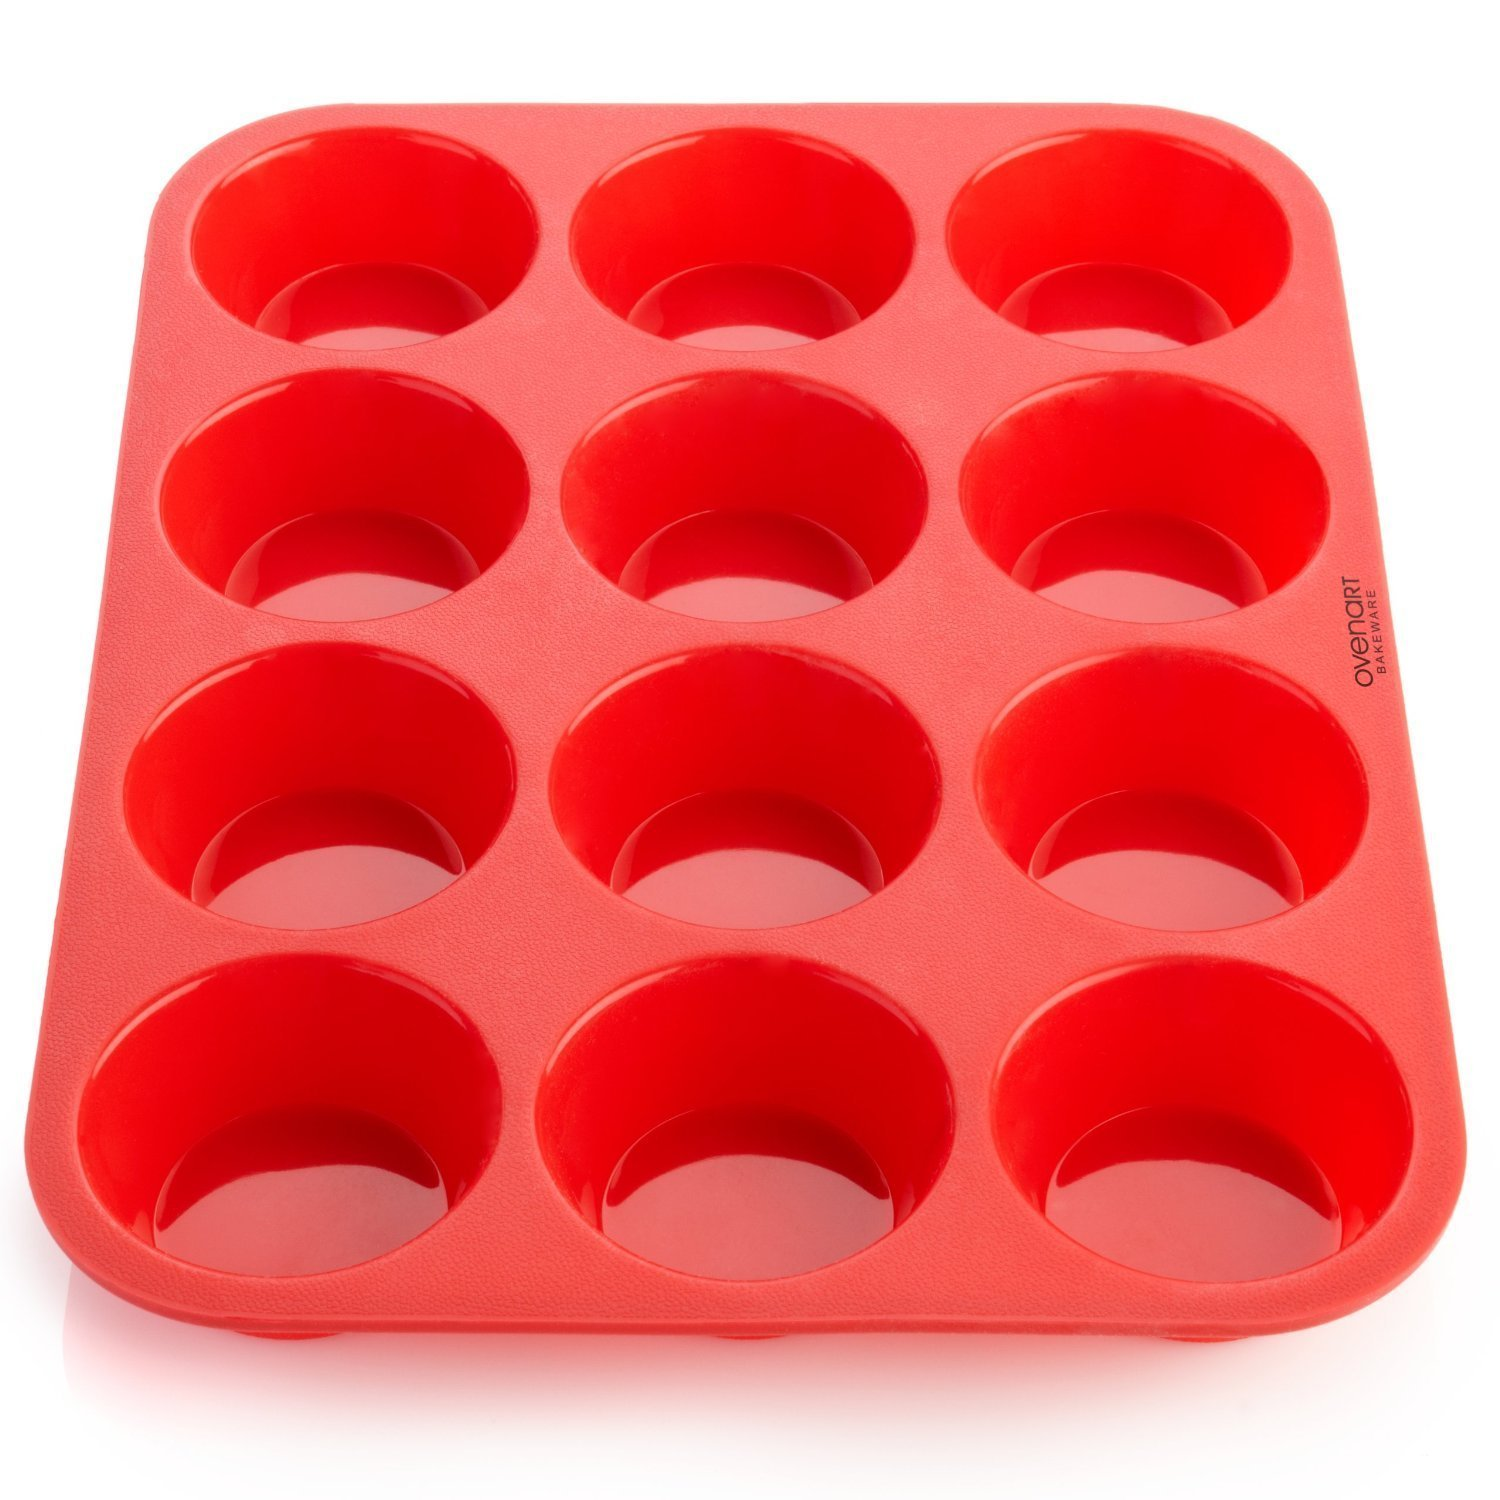 OvenArt Bakeware Silicone 12-Cup Muffin Pan, Red 12-Cup-Muffin-Pan